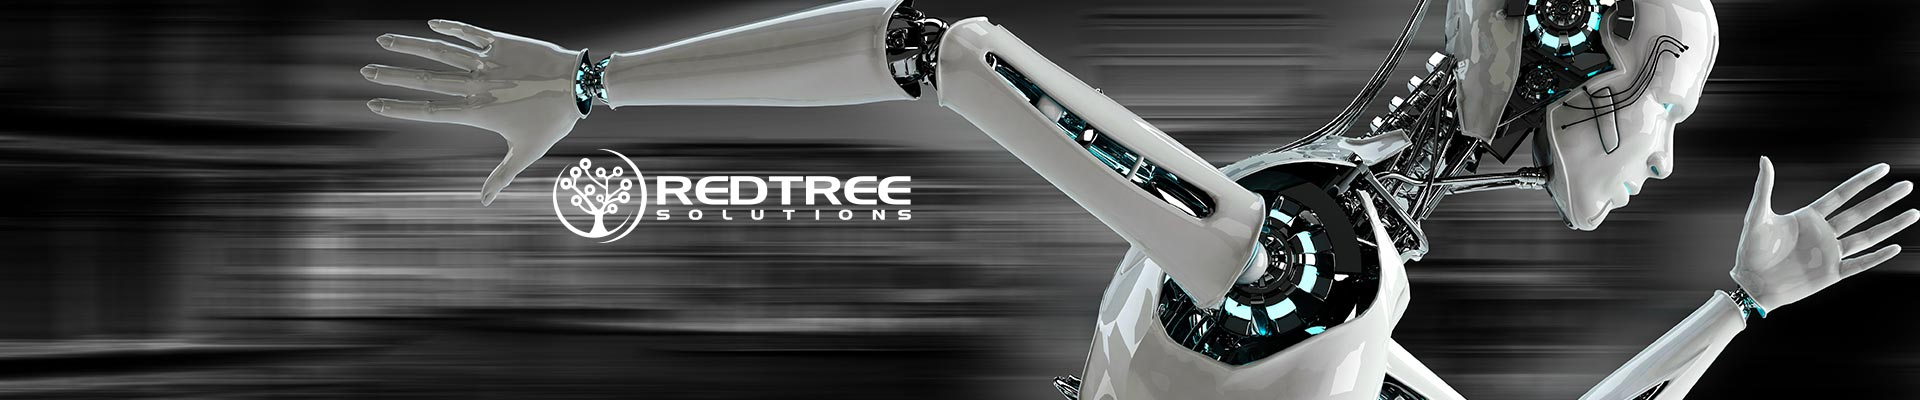 s-redtree-motion-control